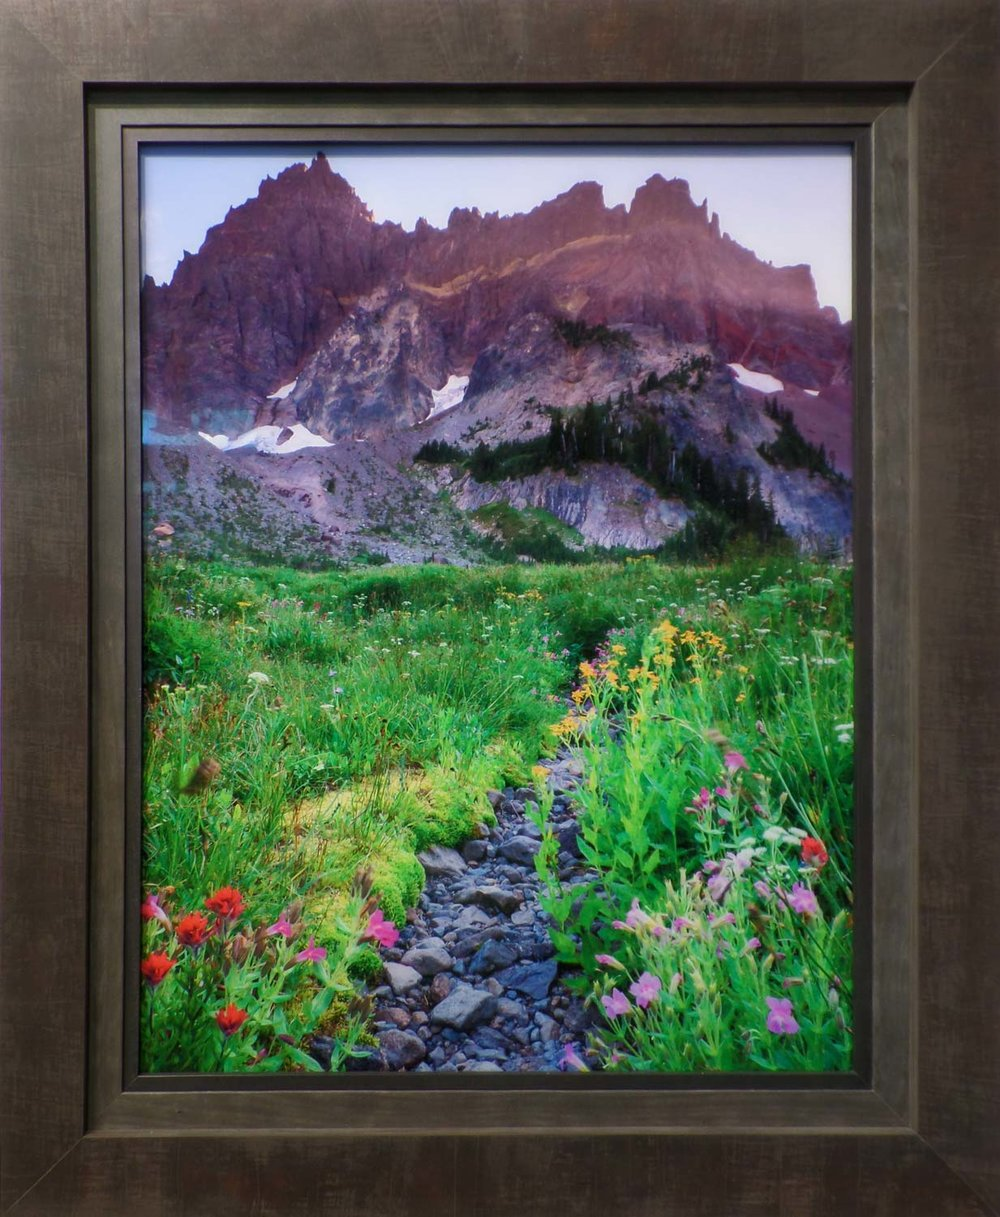 Image by James Parsons of Extreme Oregon - Custom Framing by High Desert Frameworks!.